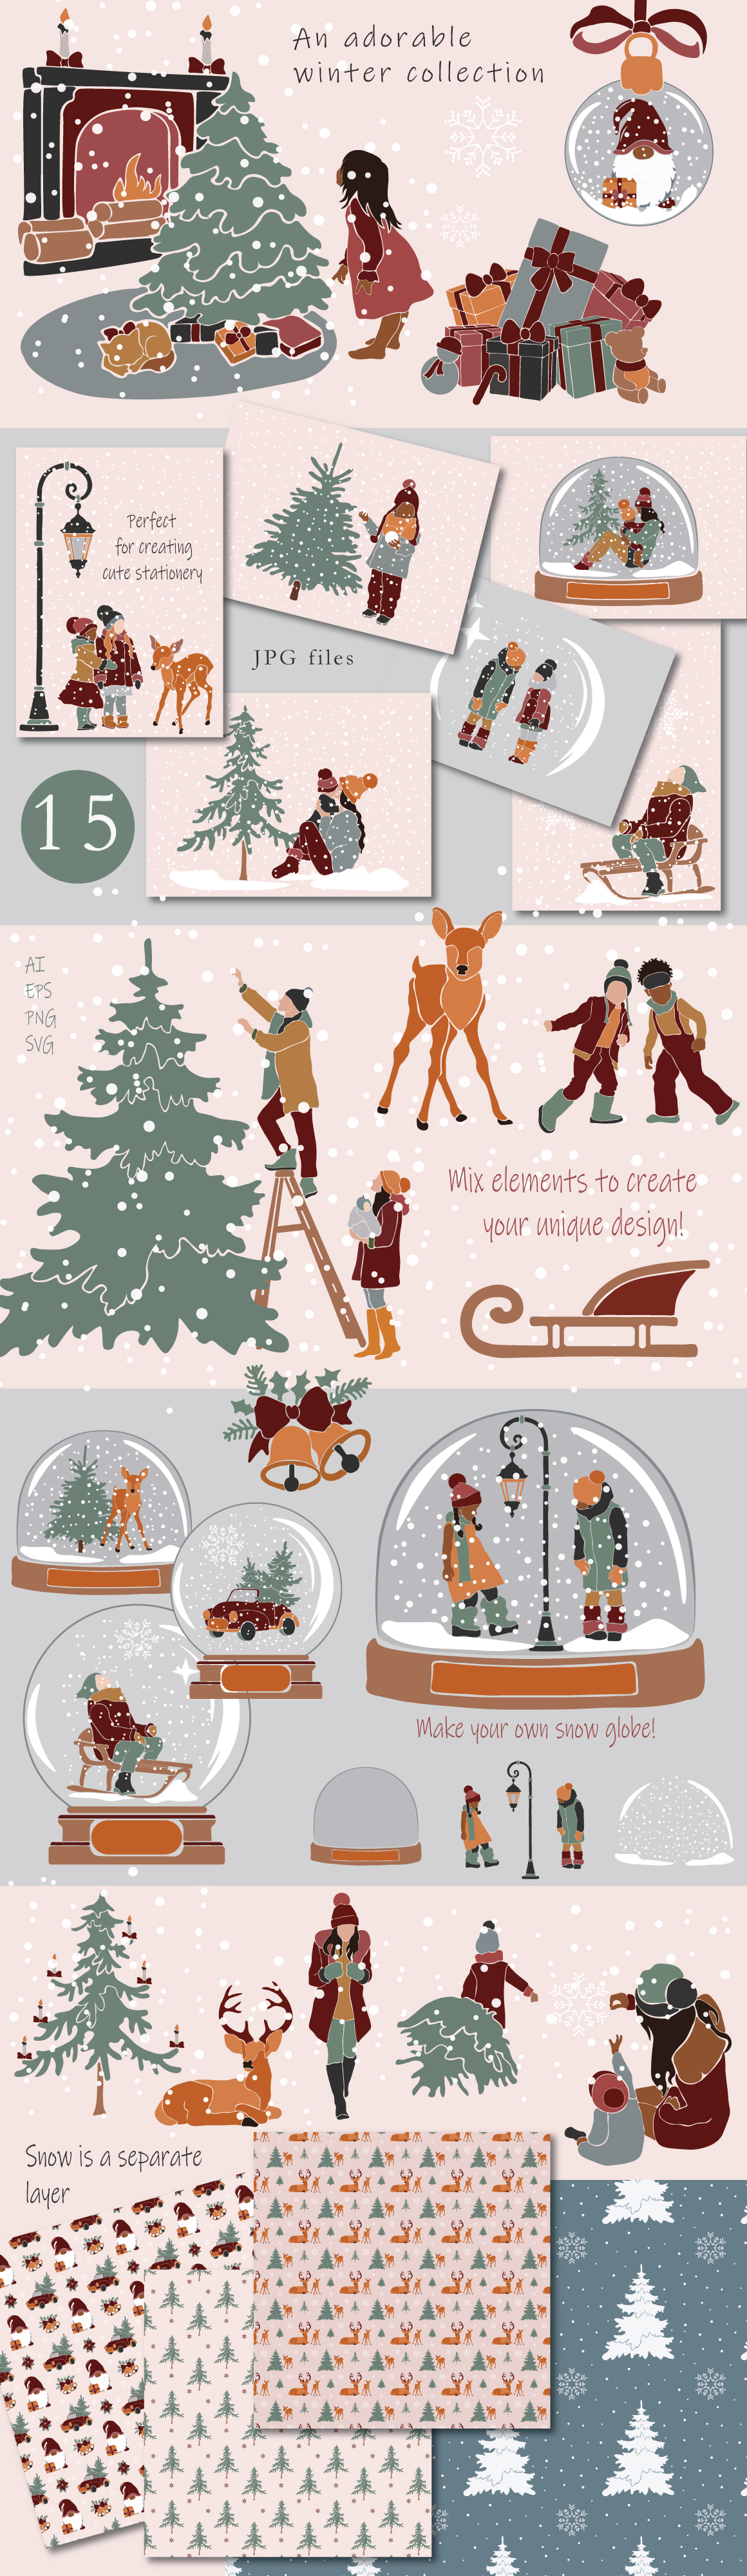 Winter Holiday Illustration Collection